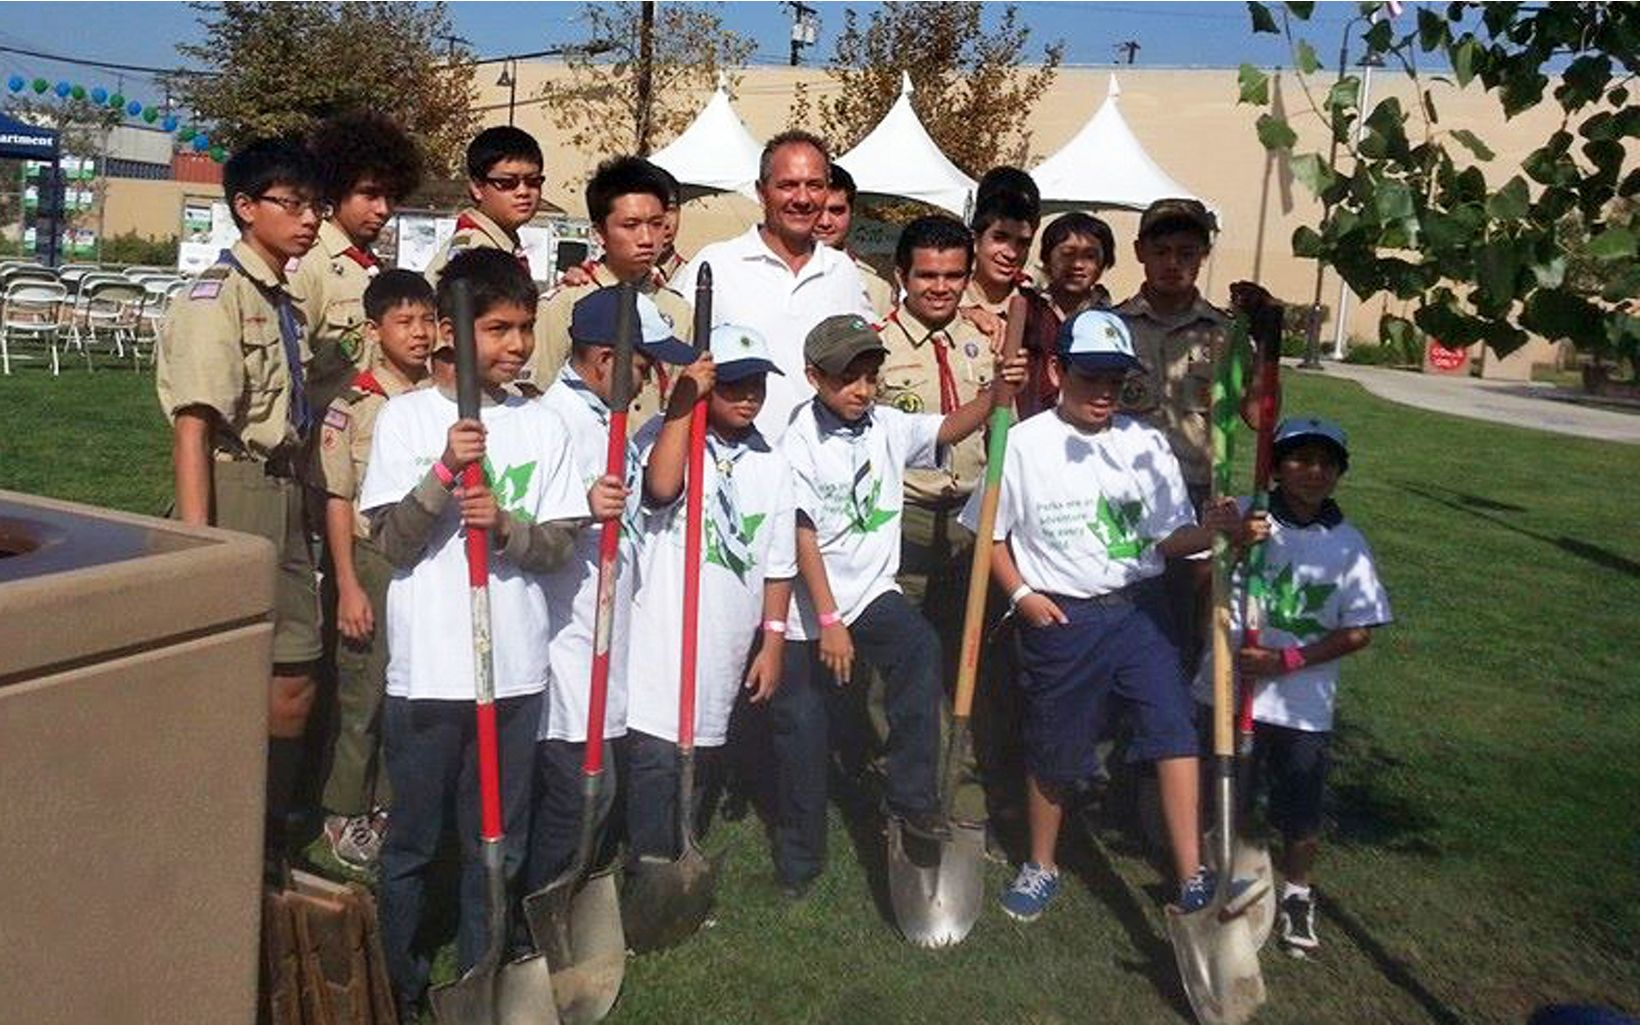 Volunteers plant trees at a 2013 Odwalla and TNC event in Los Angeles, CA.